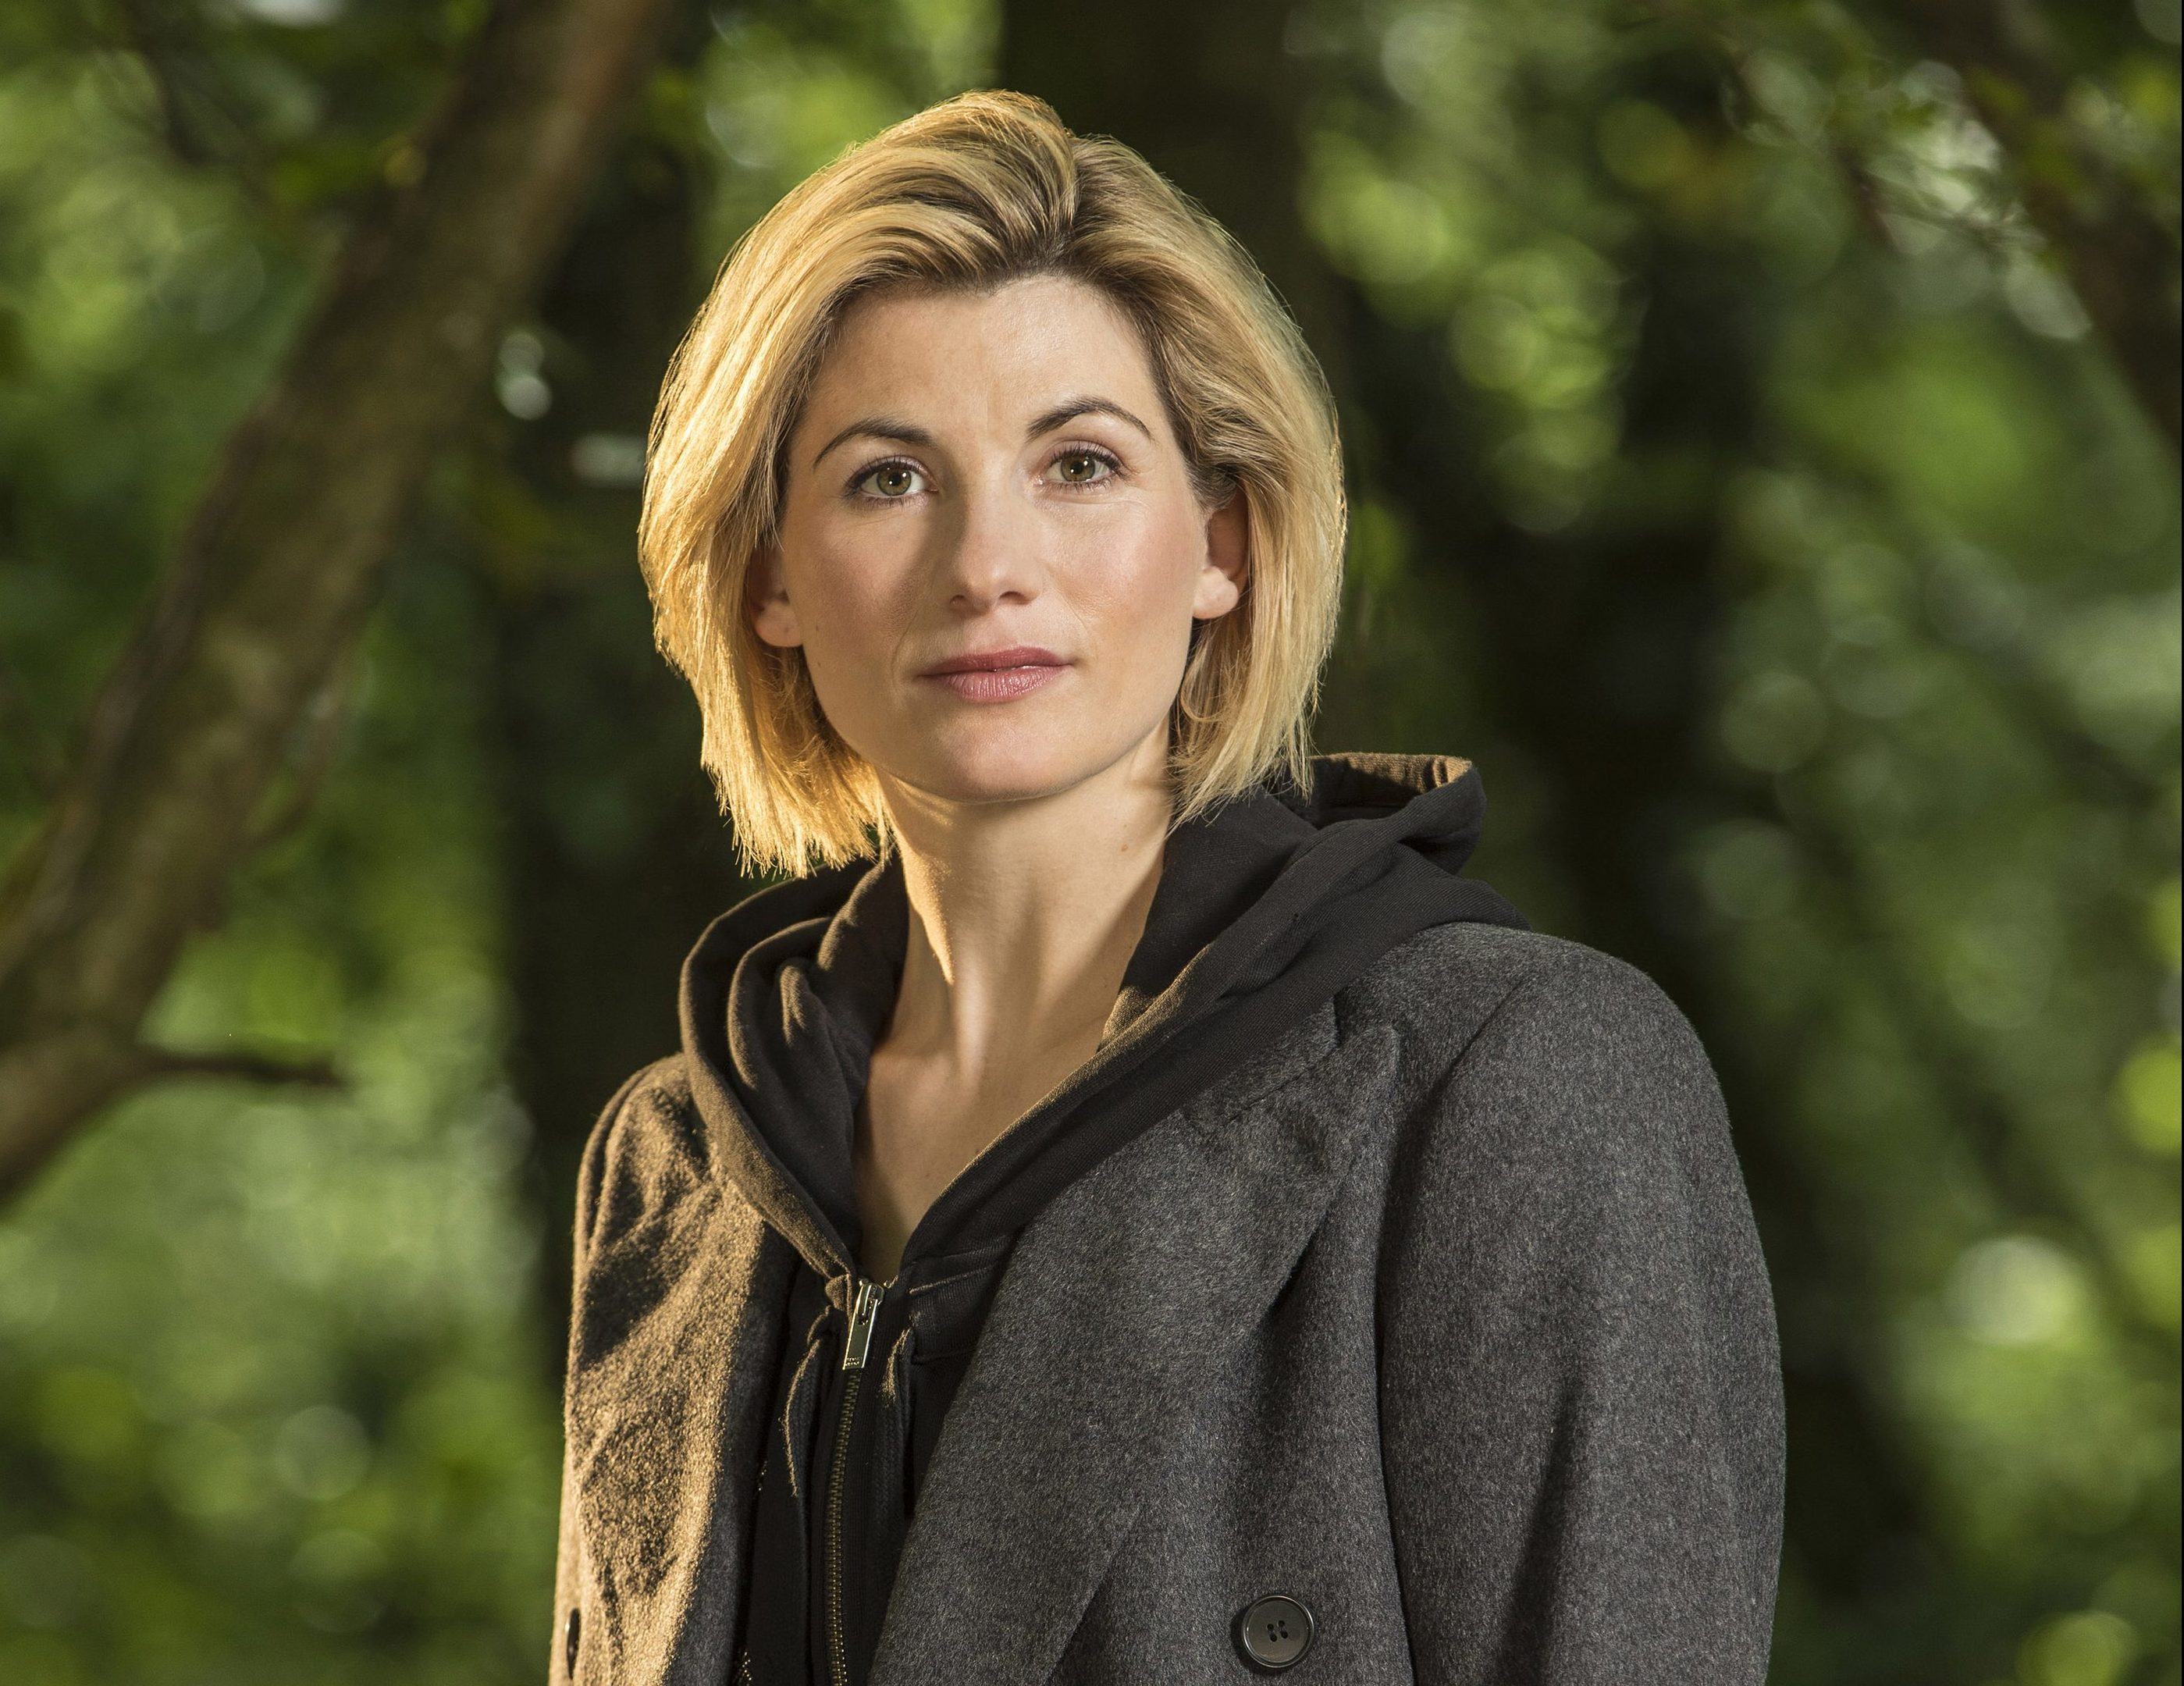 Jodie Whittaker has been cast as the 13th Doctor Who